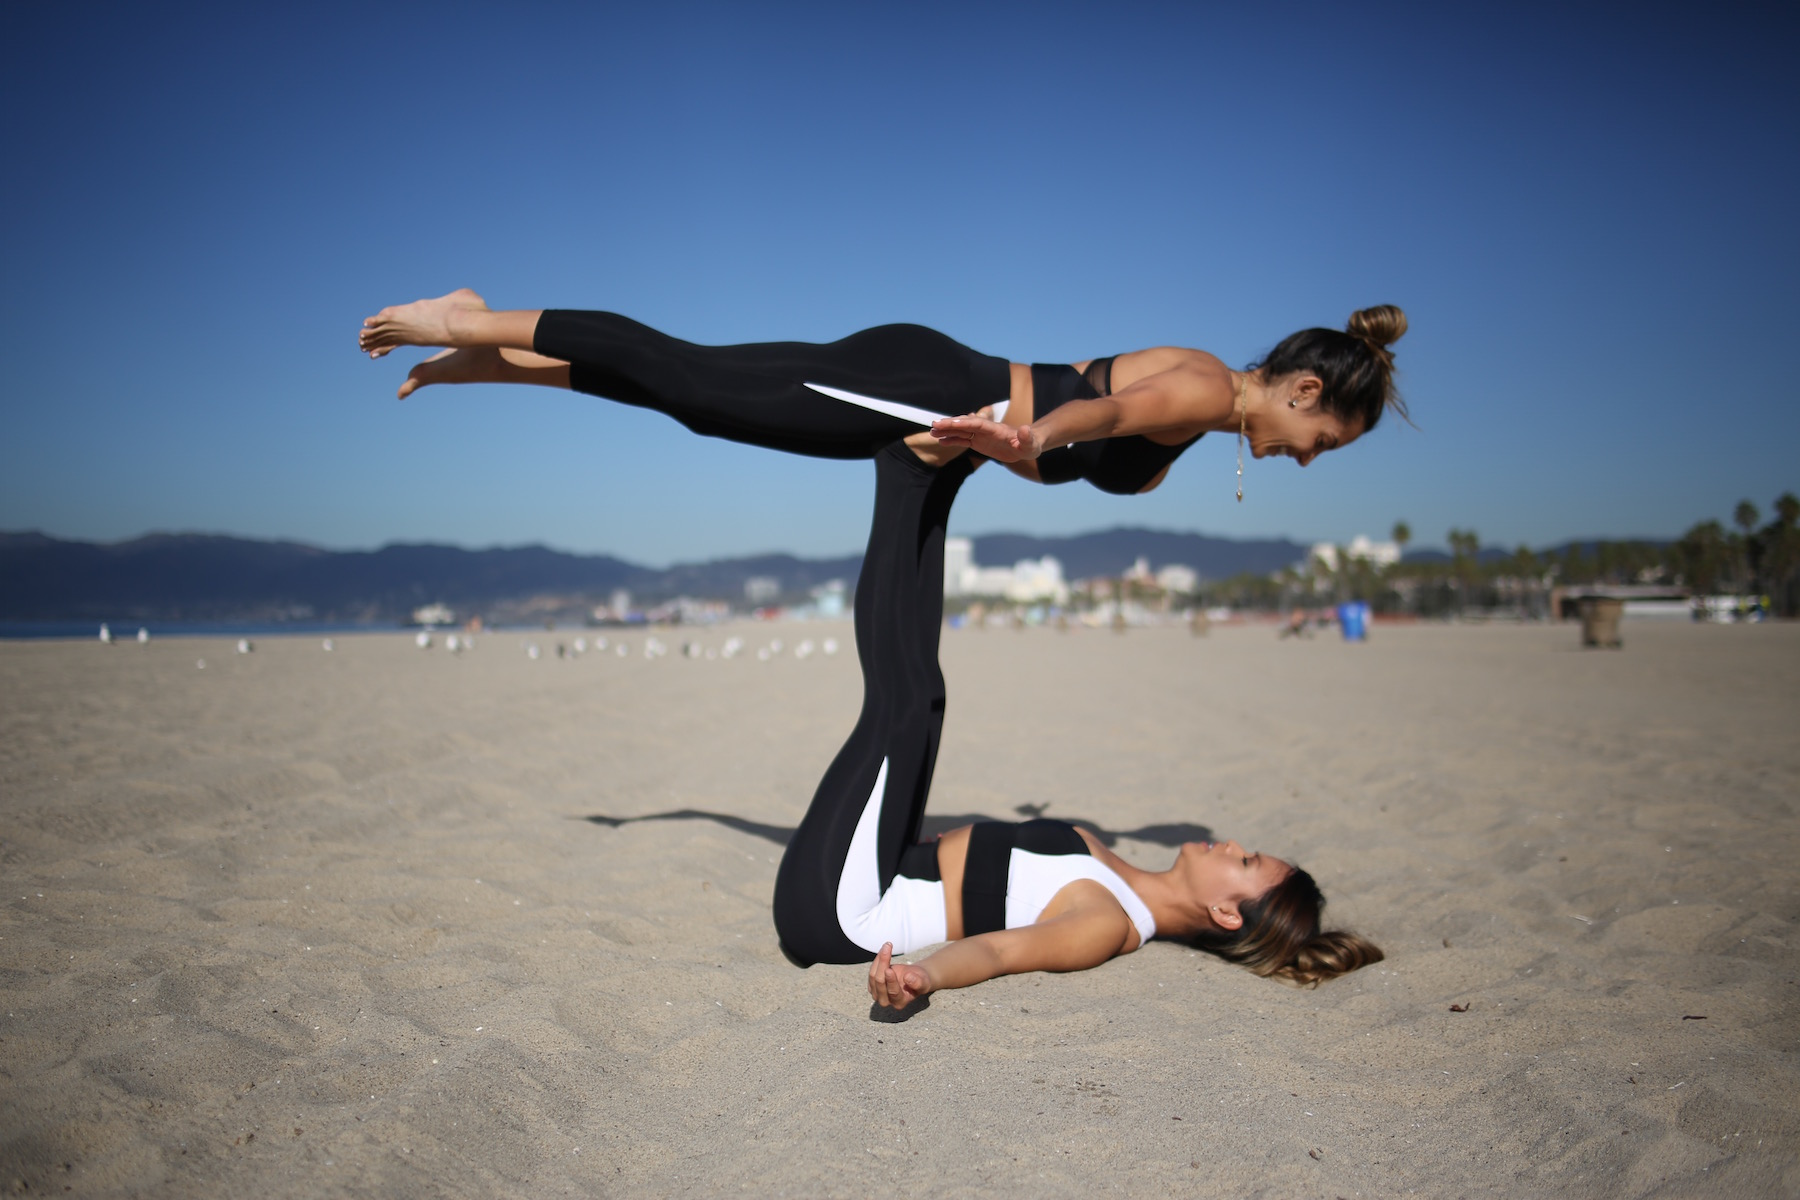 40 Partner Yoga Poses to Try with Your Friends or Family